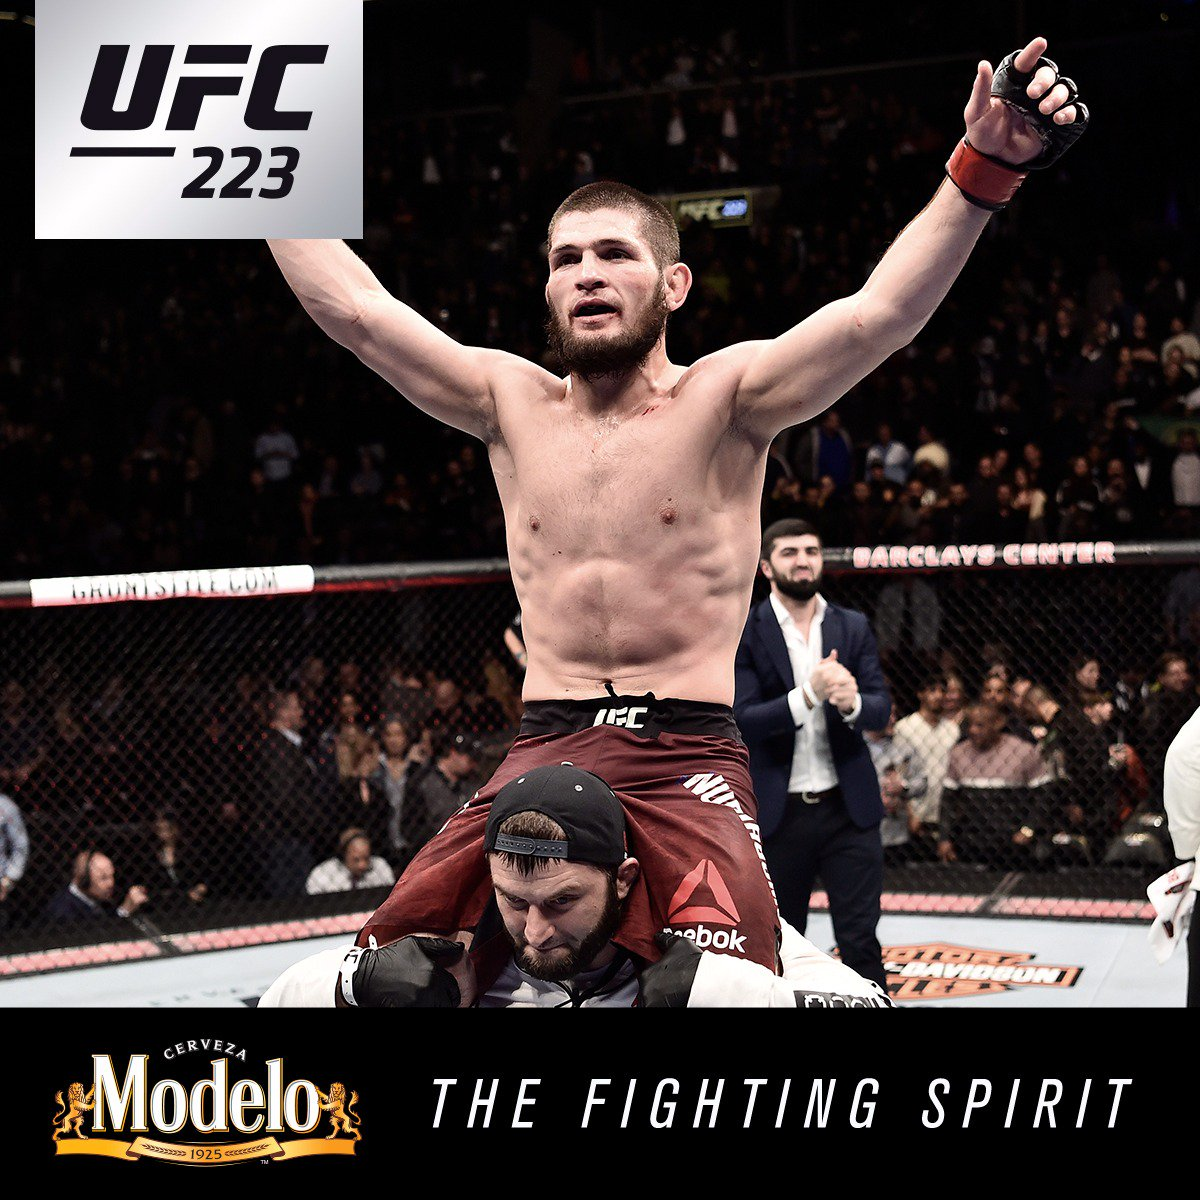 Champion mindsets The #FightingSpirit was on full display at #UFC223 as @TeamKhabib cemented himself as a UFC champion and @RoseNamajunas made her first title defense. @ModeloUSA